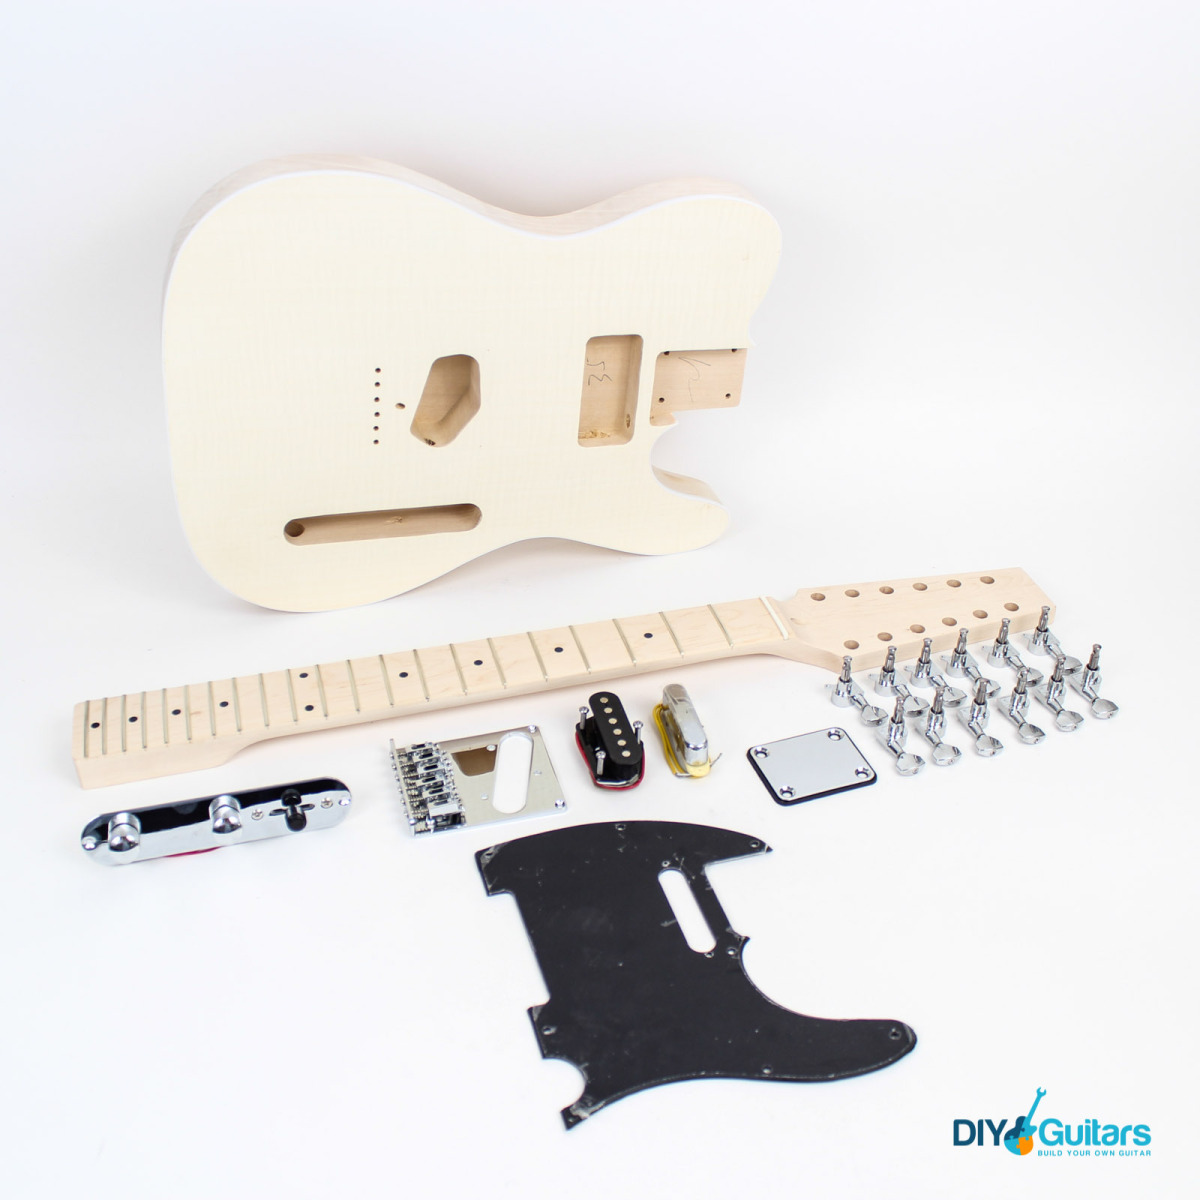 12 String Telecaster Style Guitar Kit Diy Guitars Wiring Kits Electronics Parts Sold Out Main Components